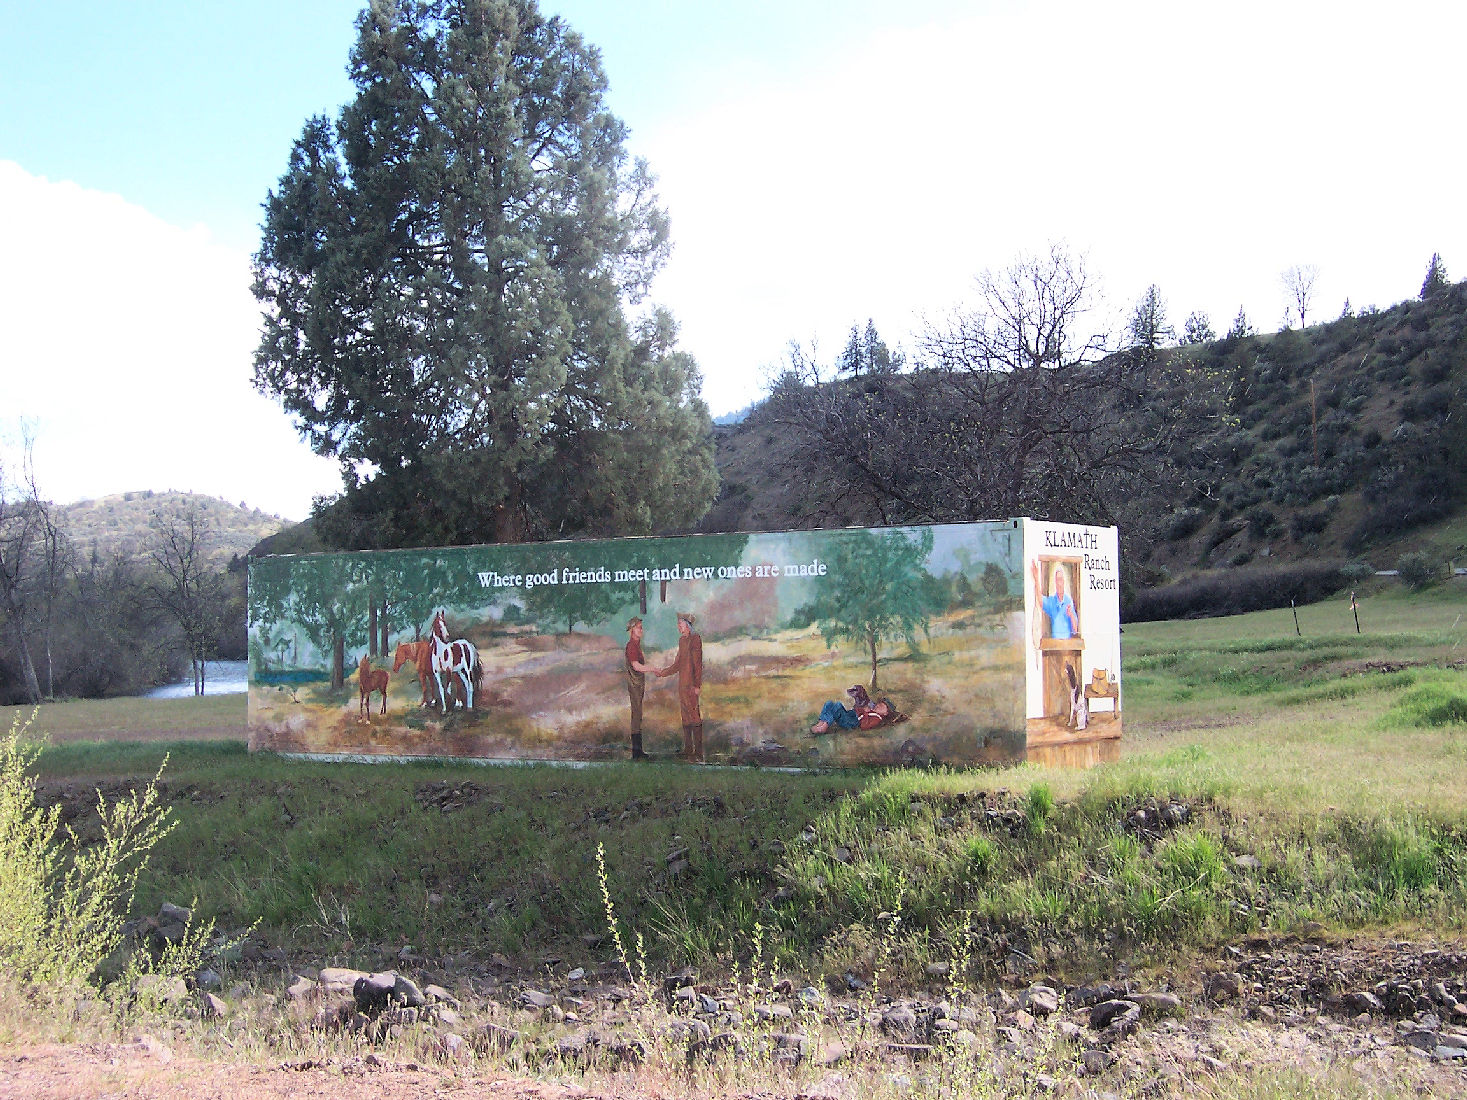 A mural at the Klamath River Ranch Resort.